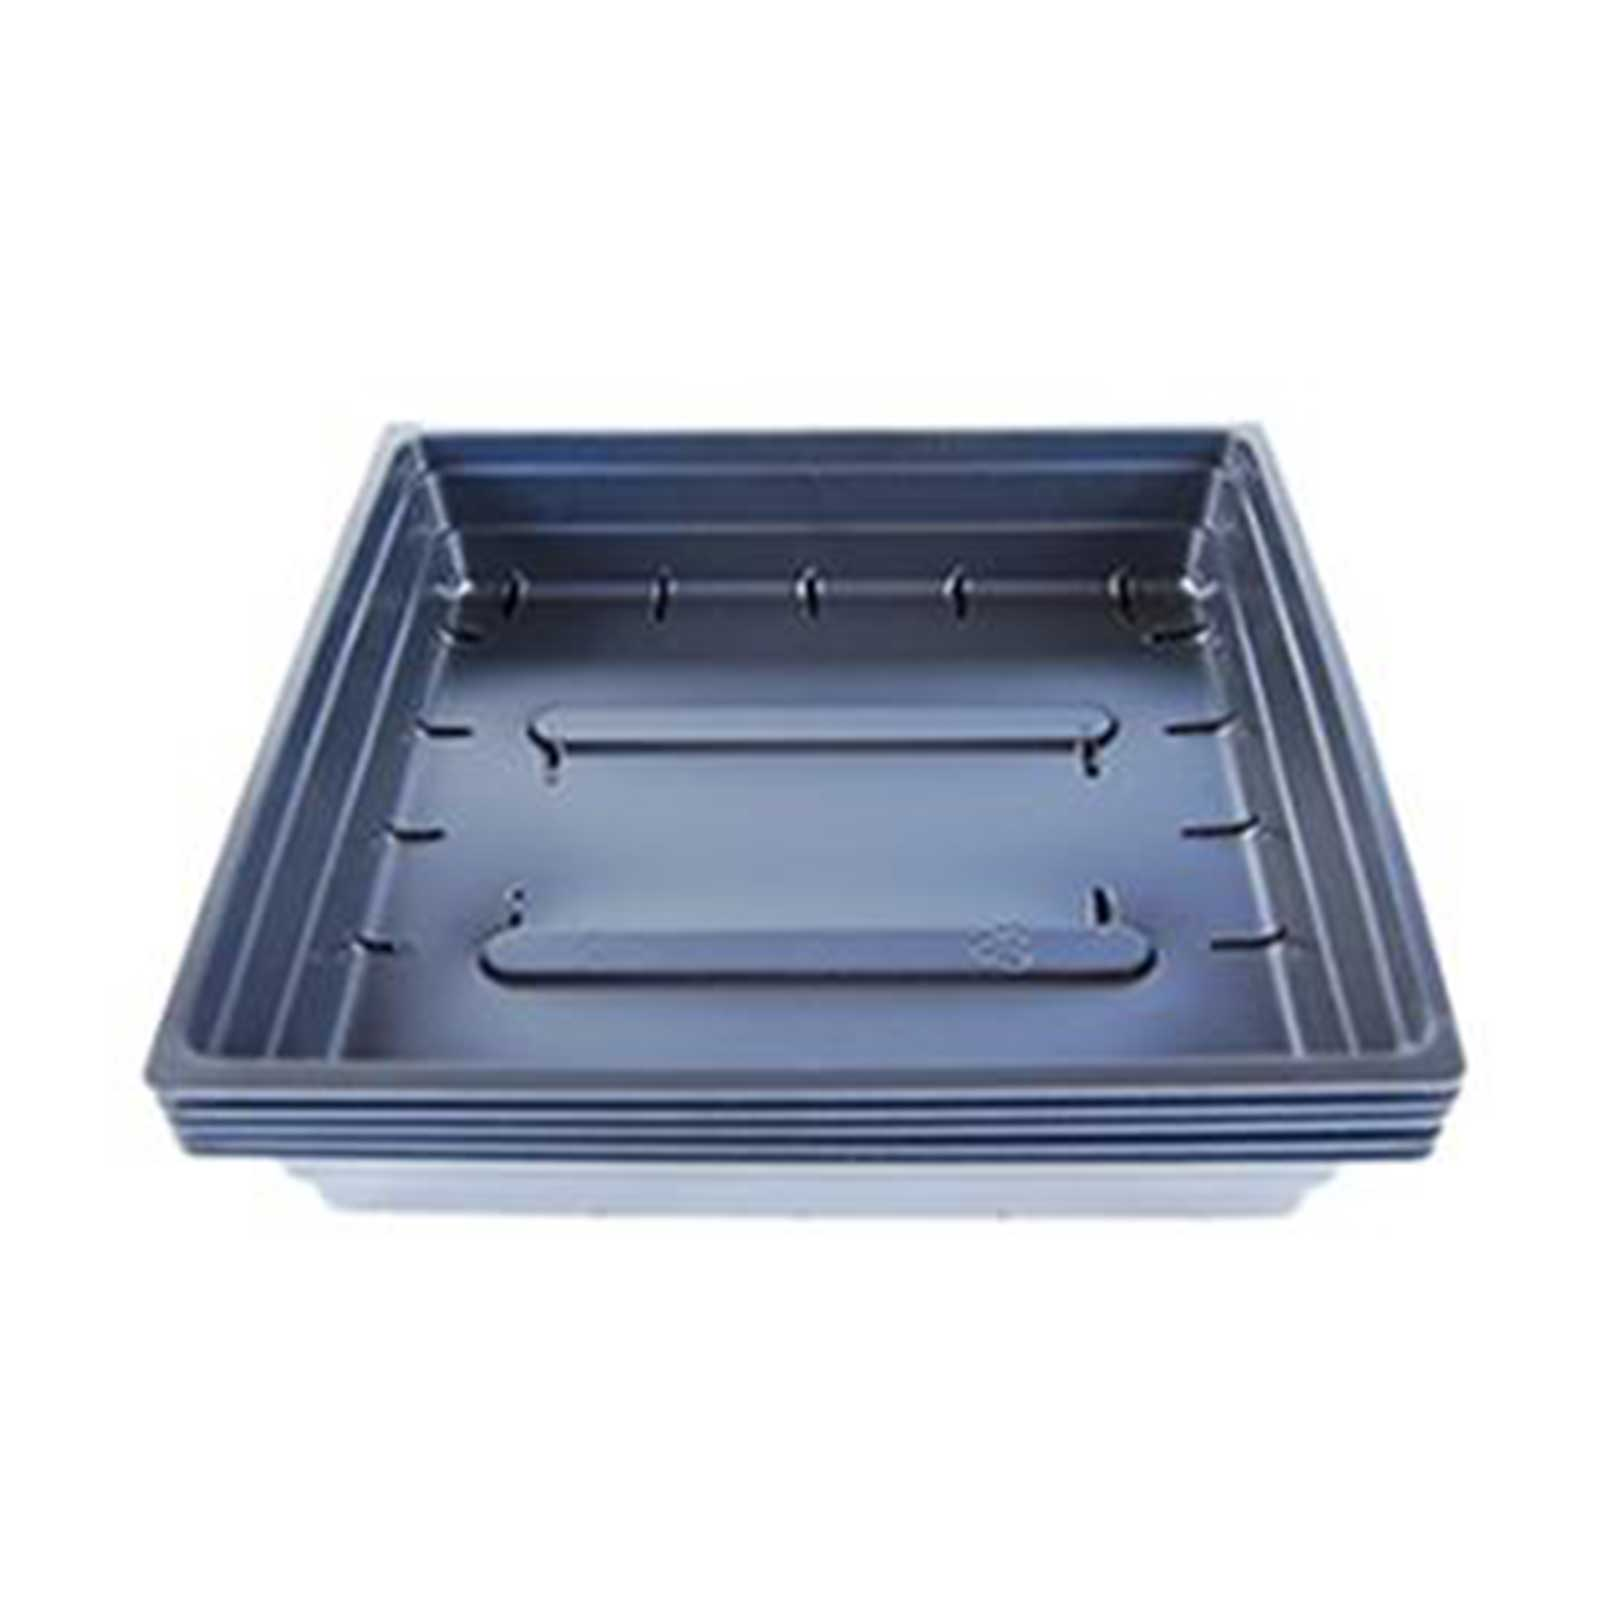 Growing Trays with Drain Holes: 10 x 10.  These growing trays work great for pet grass, or for smaller quantities of wheatgrass or barleygrass at a time. Also works well for growing microgreens and all purpose indoor / outdoor growing trays.